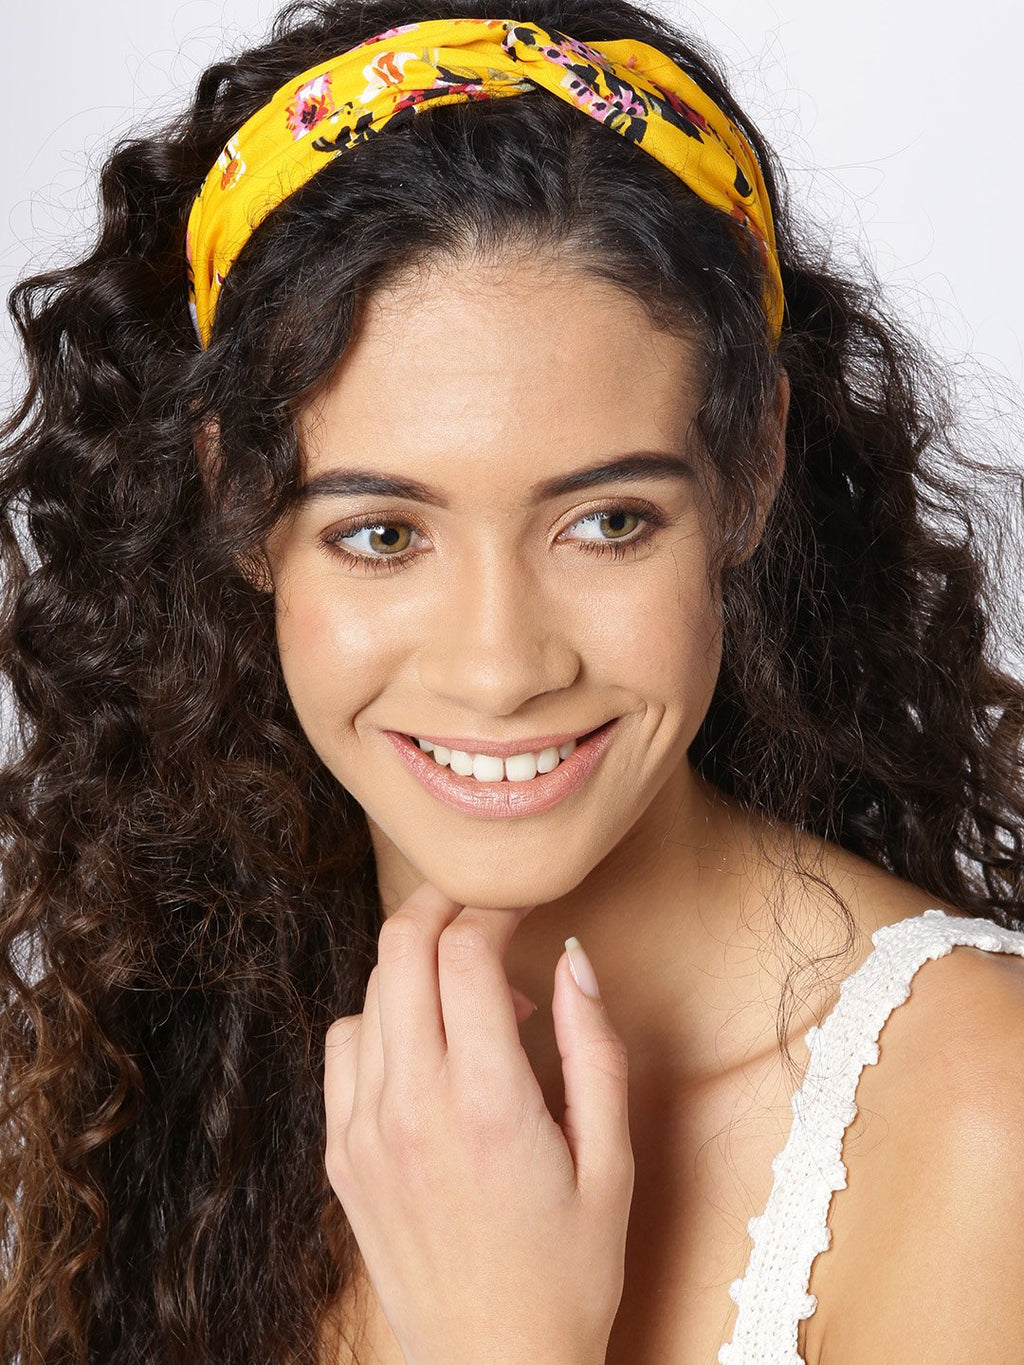 Blueberry yellow color floral printed knotted hairband